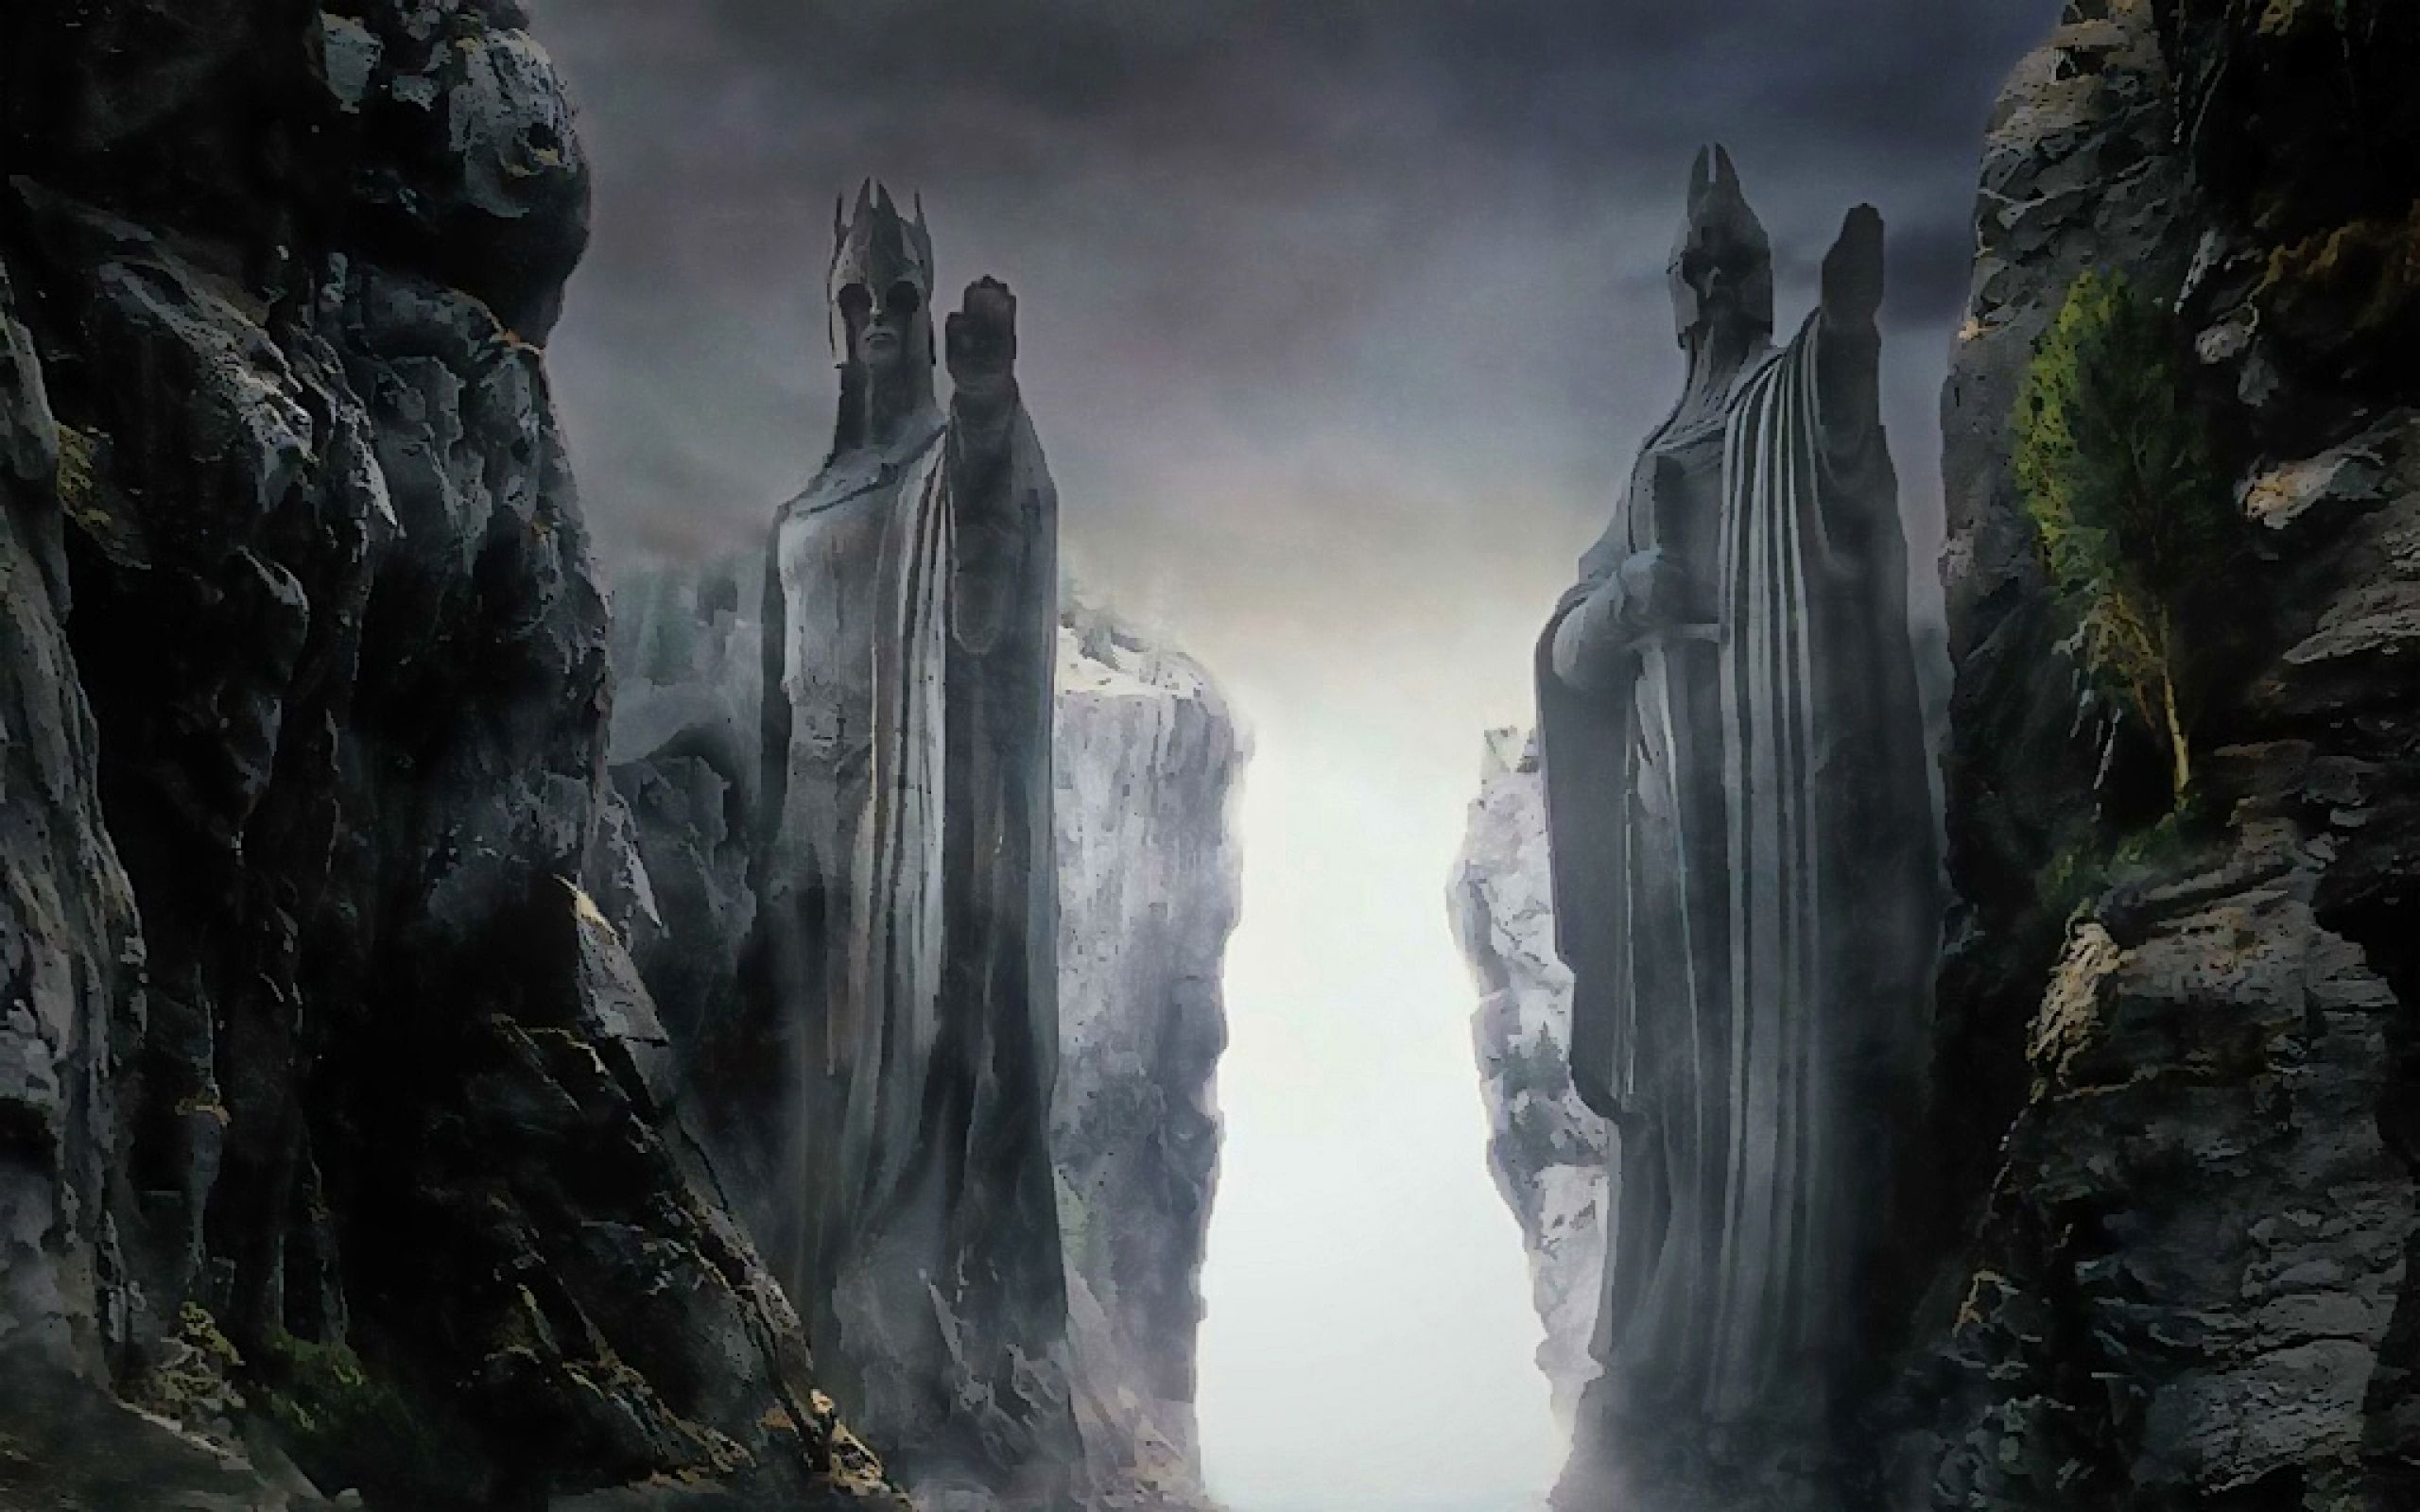 The Lord Of The Rings Argonath Statues The Fellowship Of The Ring